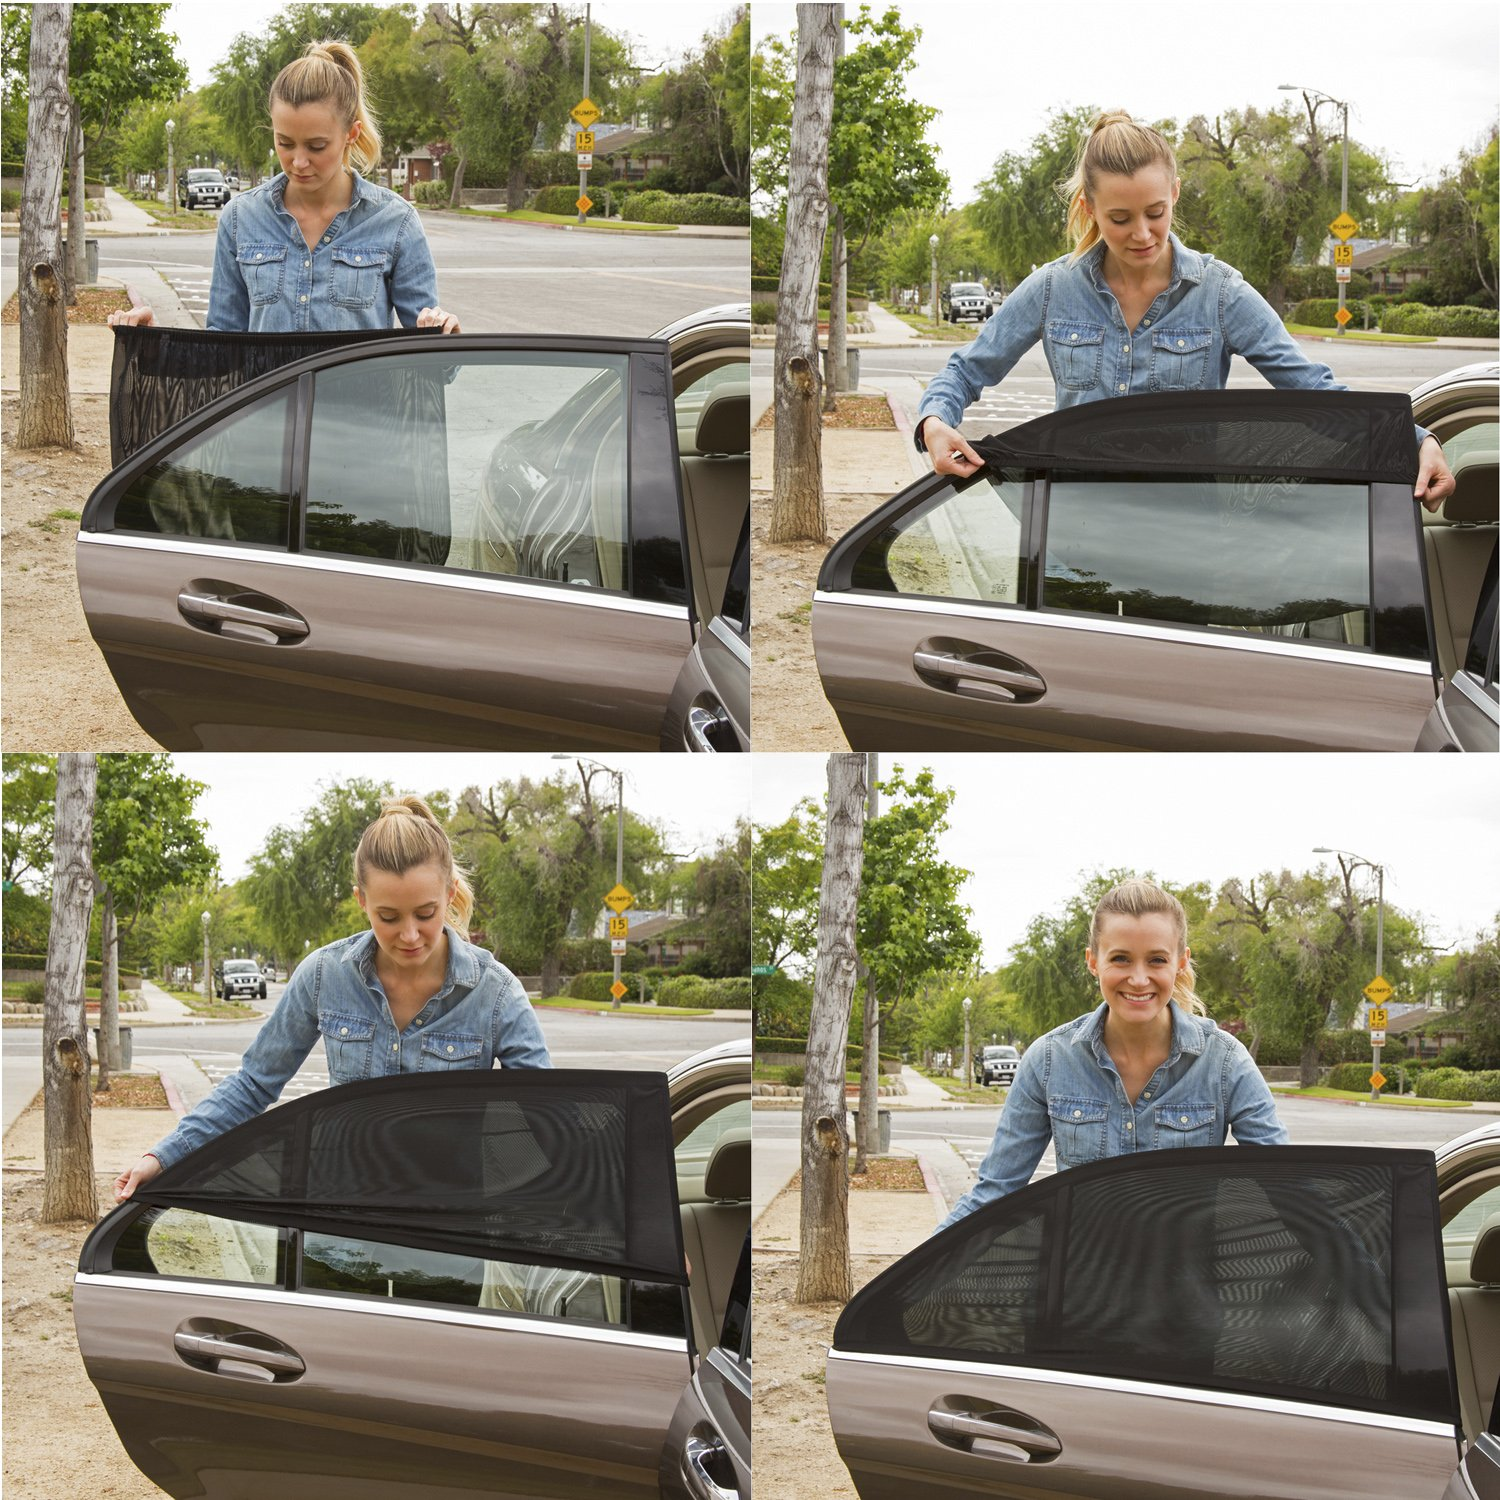 Exterior sun shades for windows - Amazon Com Shadesox Universal Fit Car Side Window Baby Sun Shade 2 Pack Protects Your Baby And Older Kids From The Sun Fits All 99 Cars Most Suvs